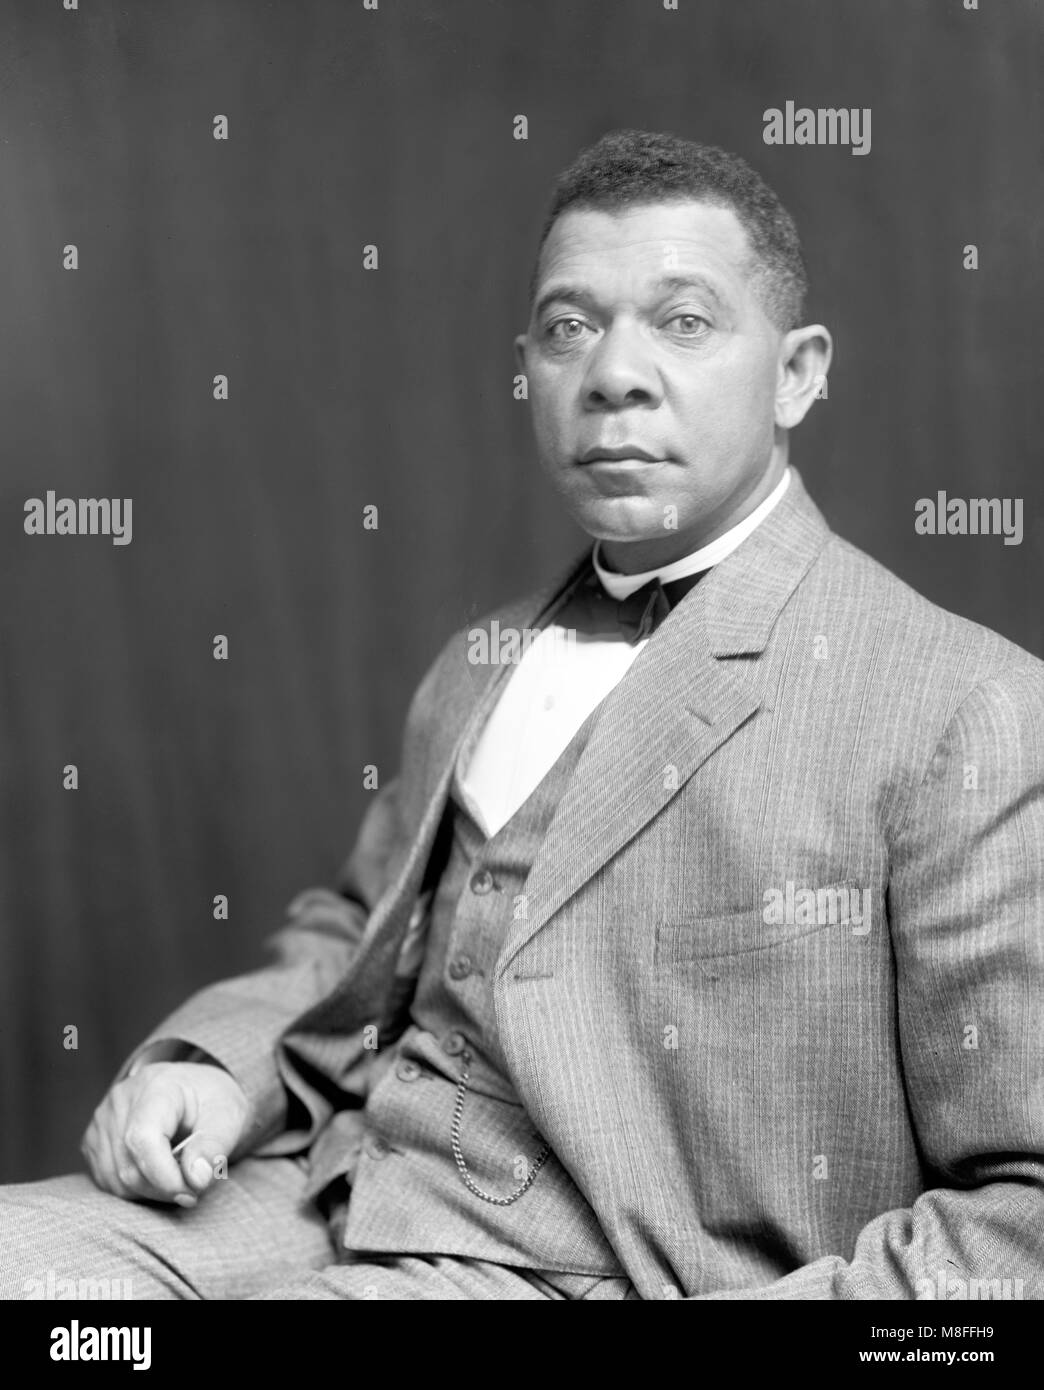 Booker T Washington. Portrait of the American author, educator and civil rights leader Booker Taliaferro Washington - Stock Image